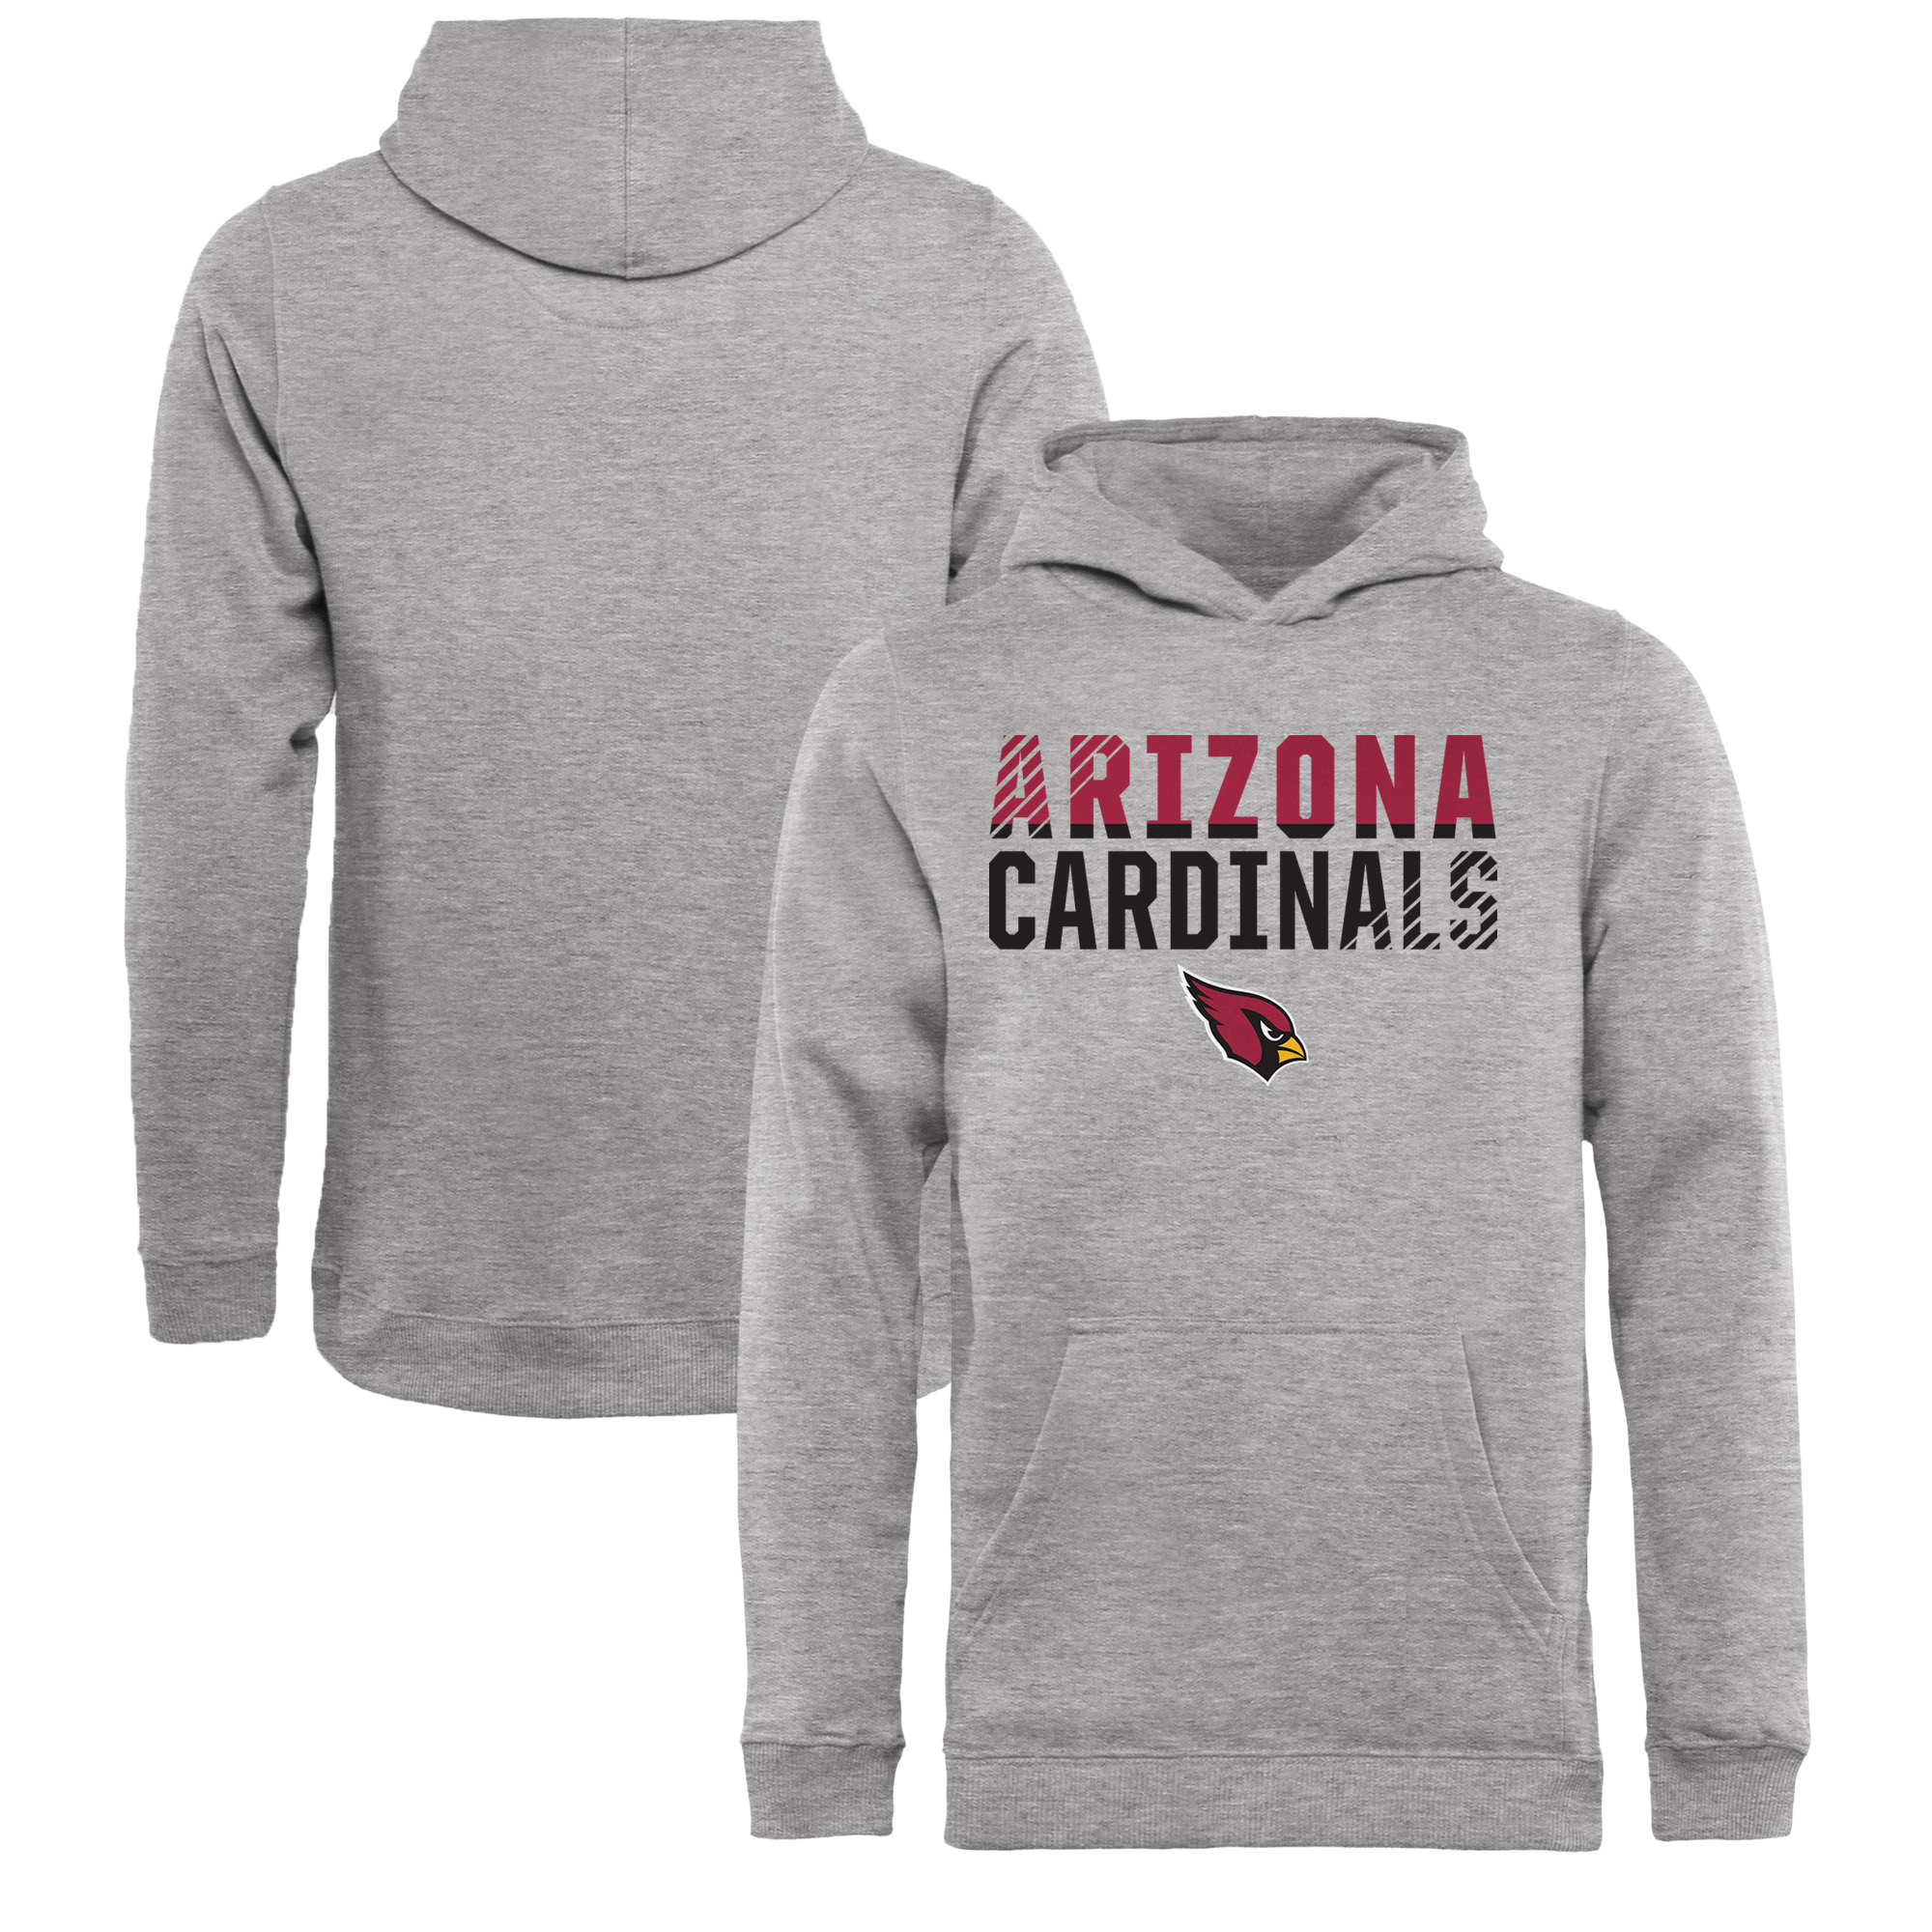 Arizona Cardinals NFL Pro Line by Fanatics Branded Youth Iconic Collection Fade Out Pullover Hoodie - Ash